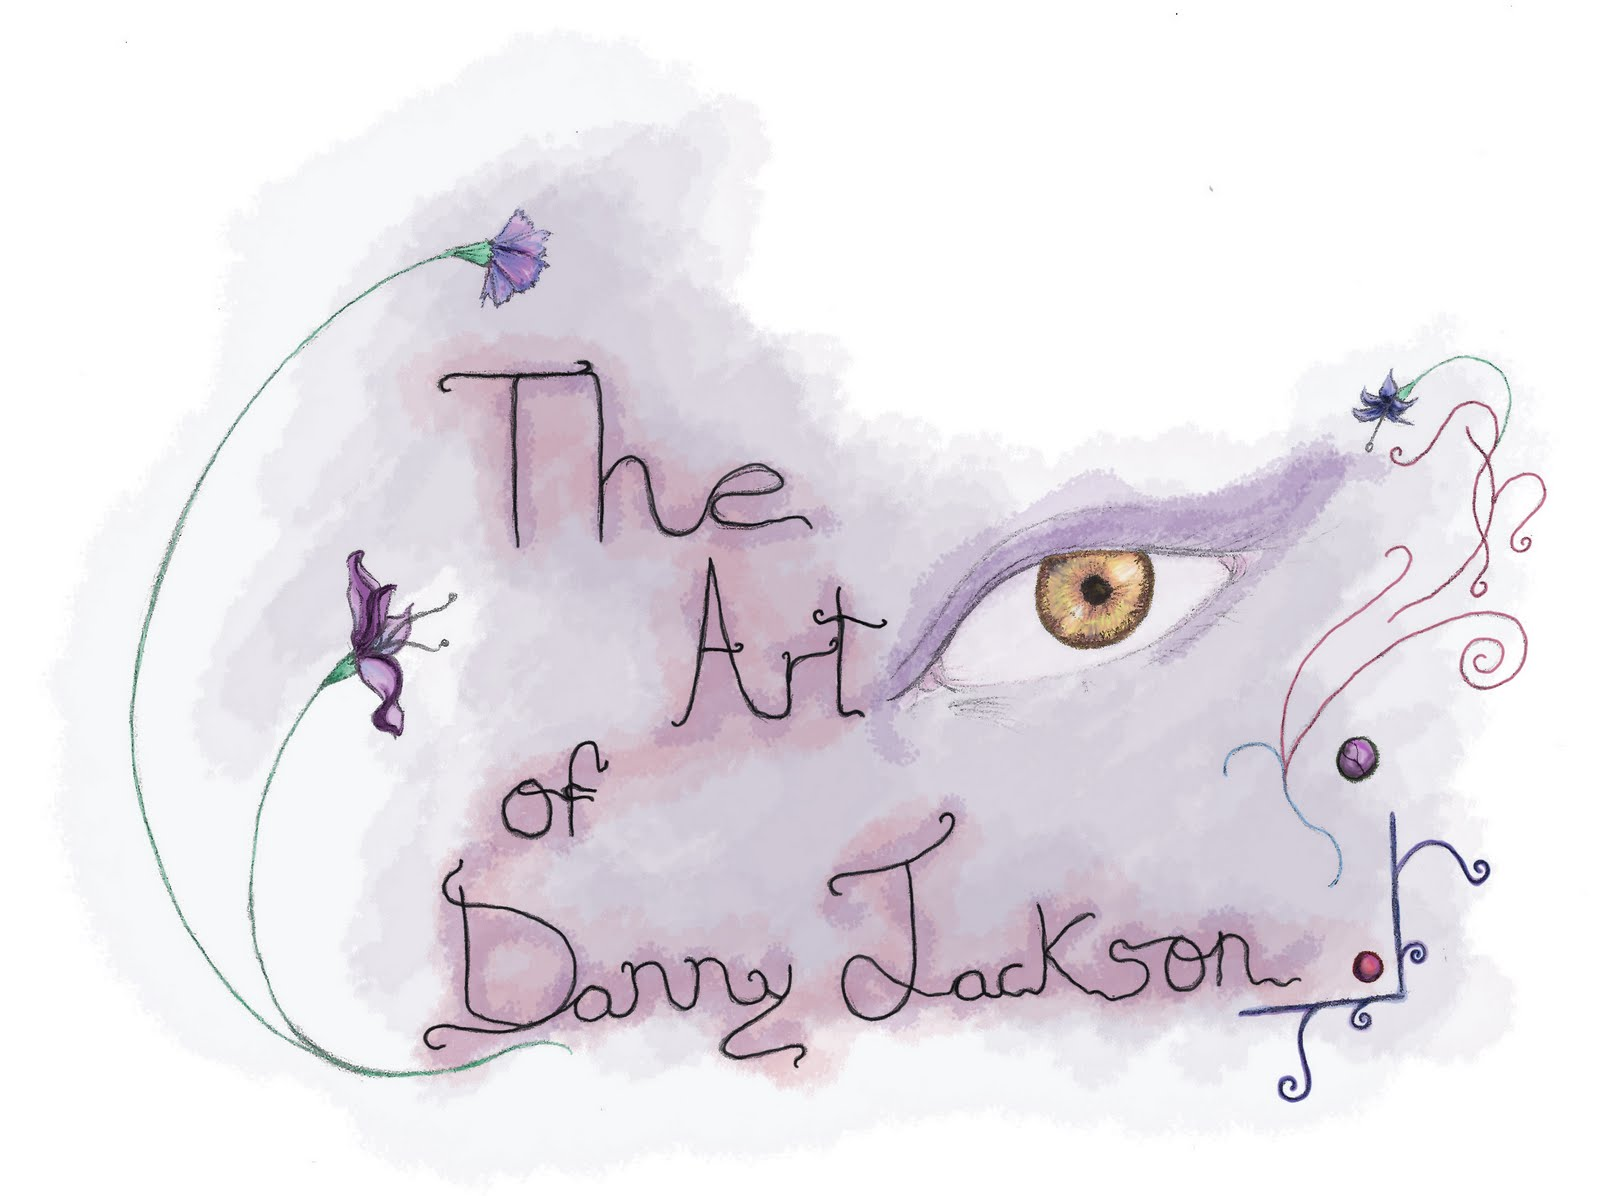 The Art of Danny Jackson